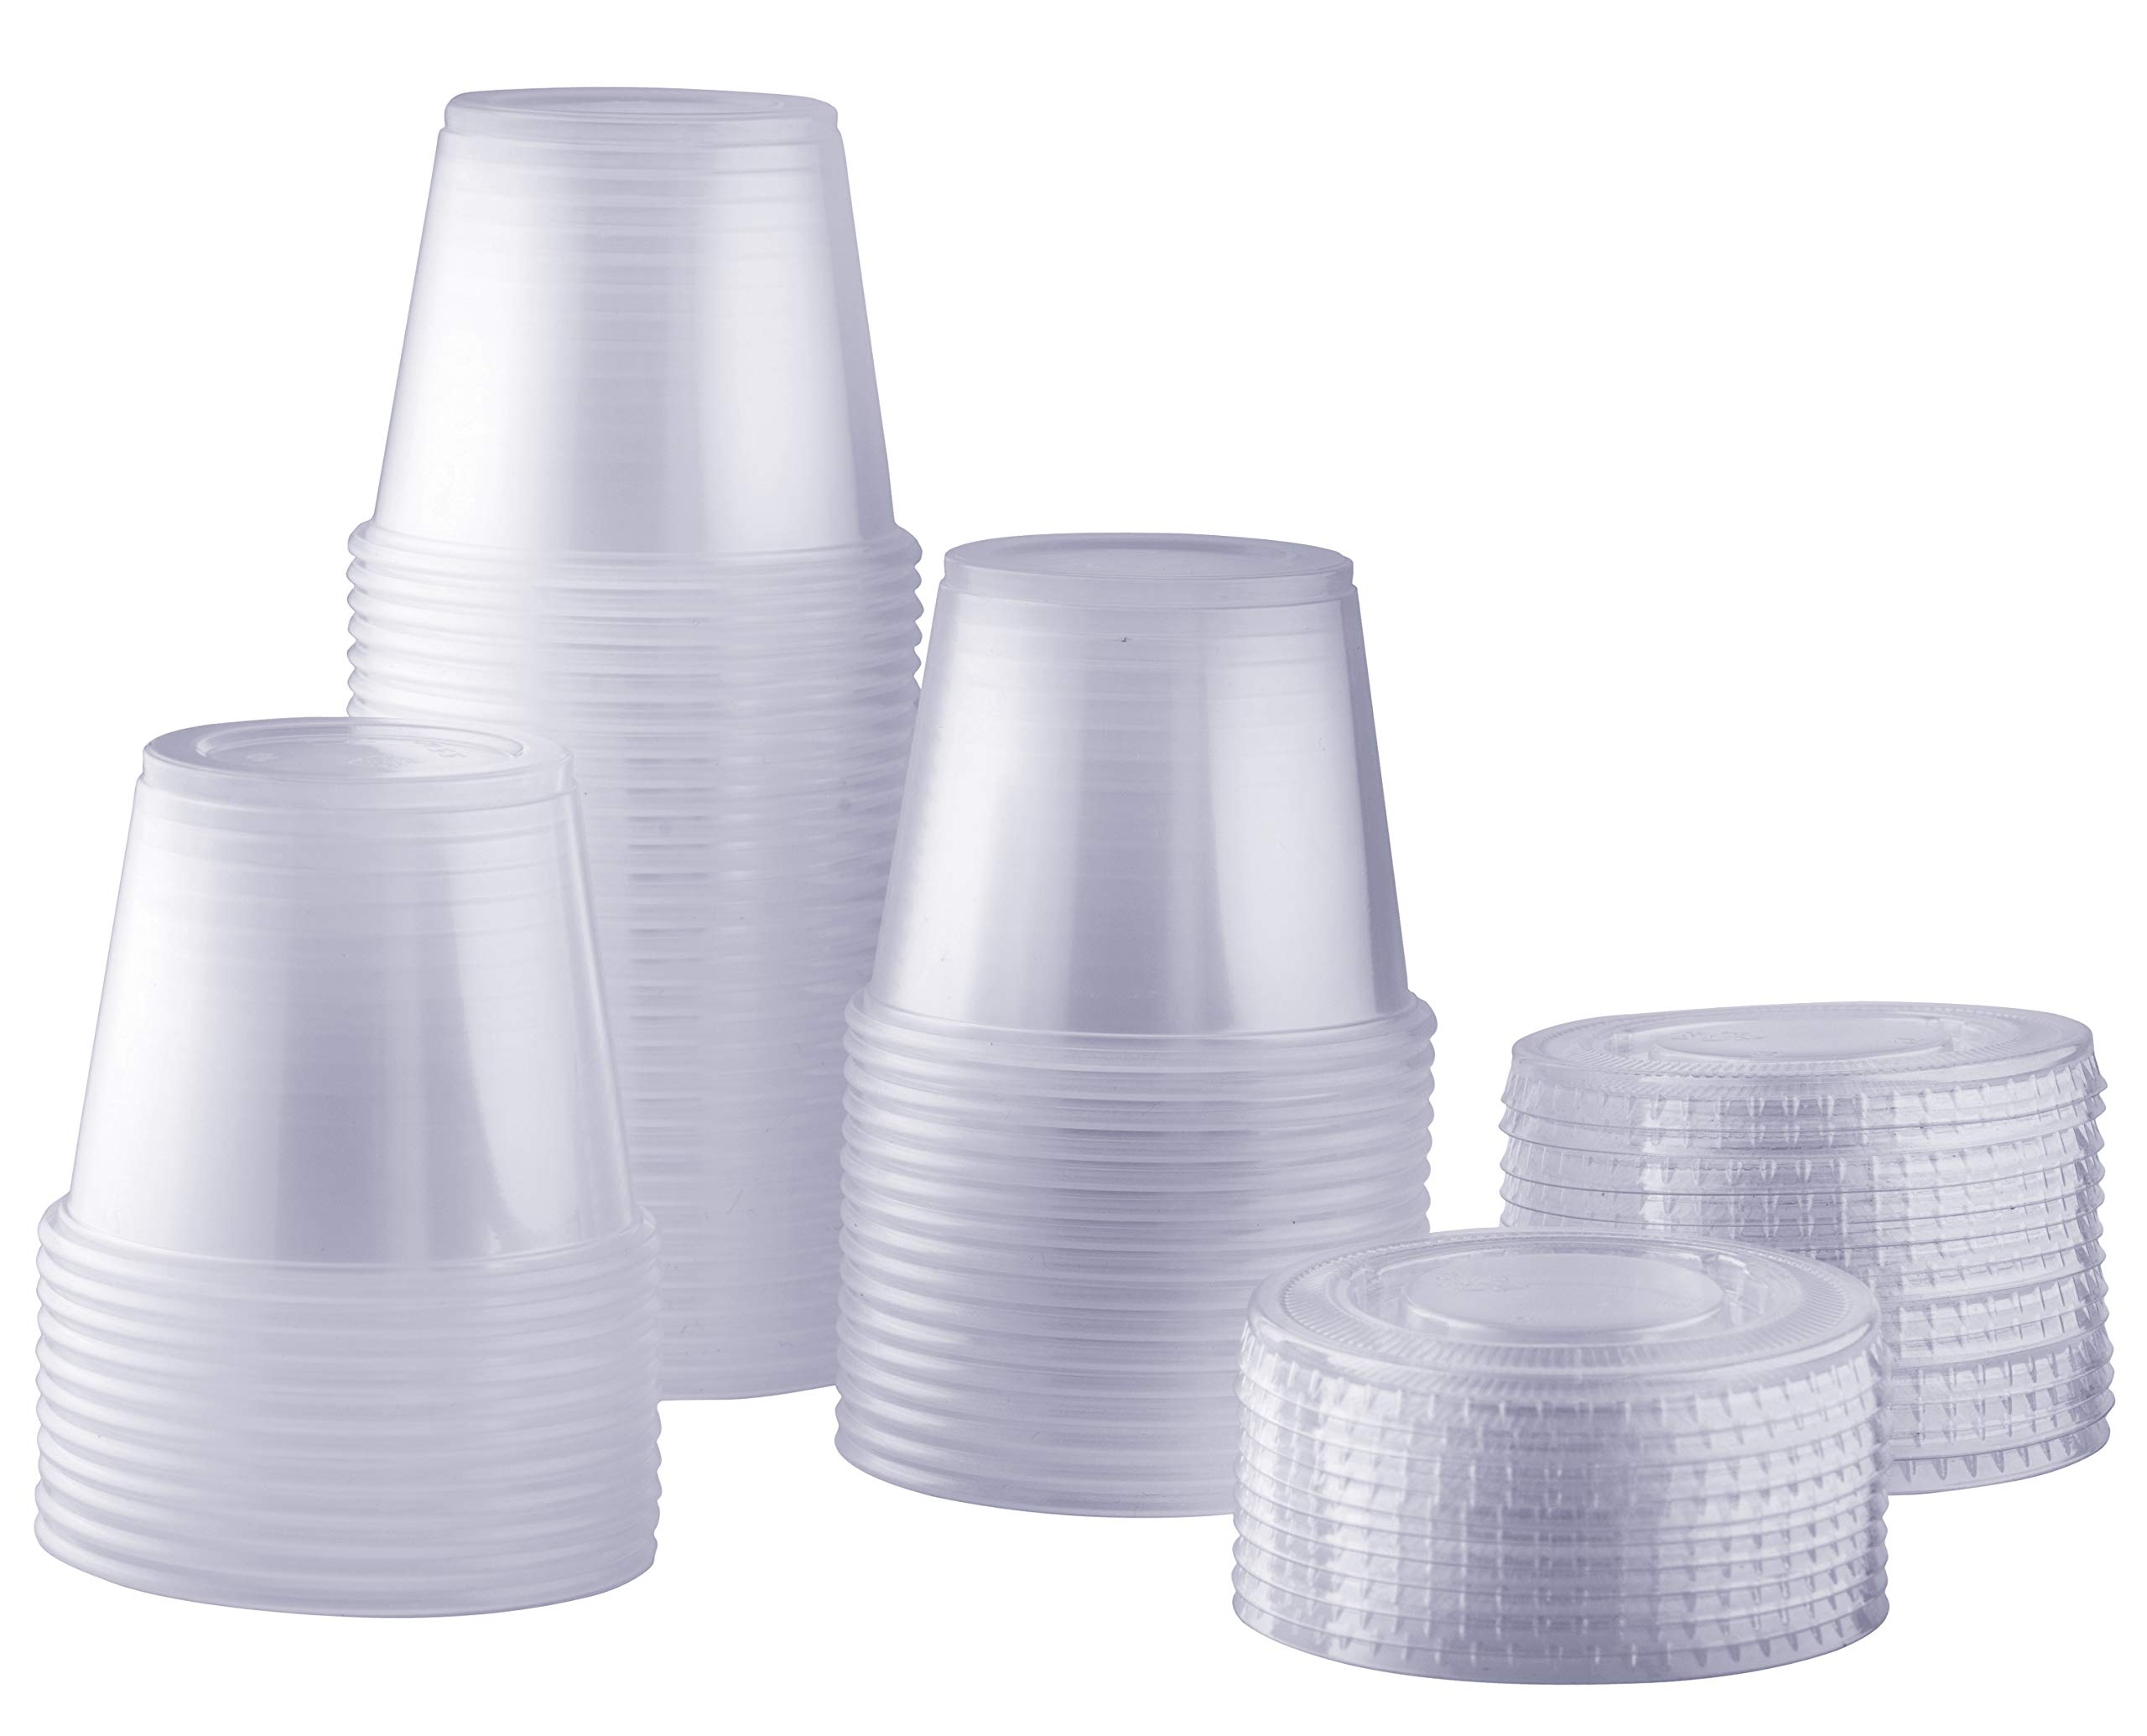 [100 Sets - 5.5 oz.] Plastic Disposable Portion Cups With Lids, Souffle Cups, Condiment Cups by Comfy Package